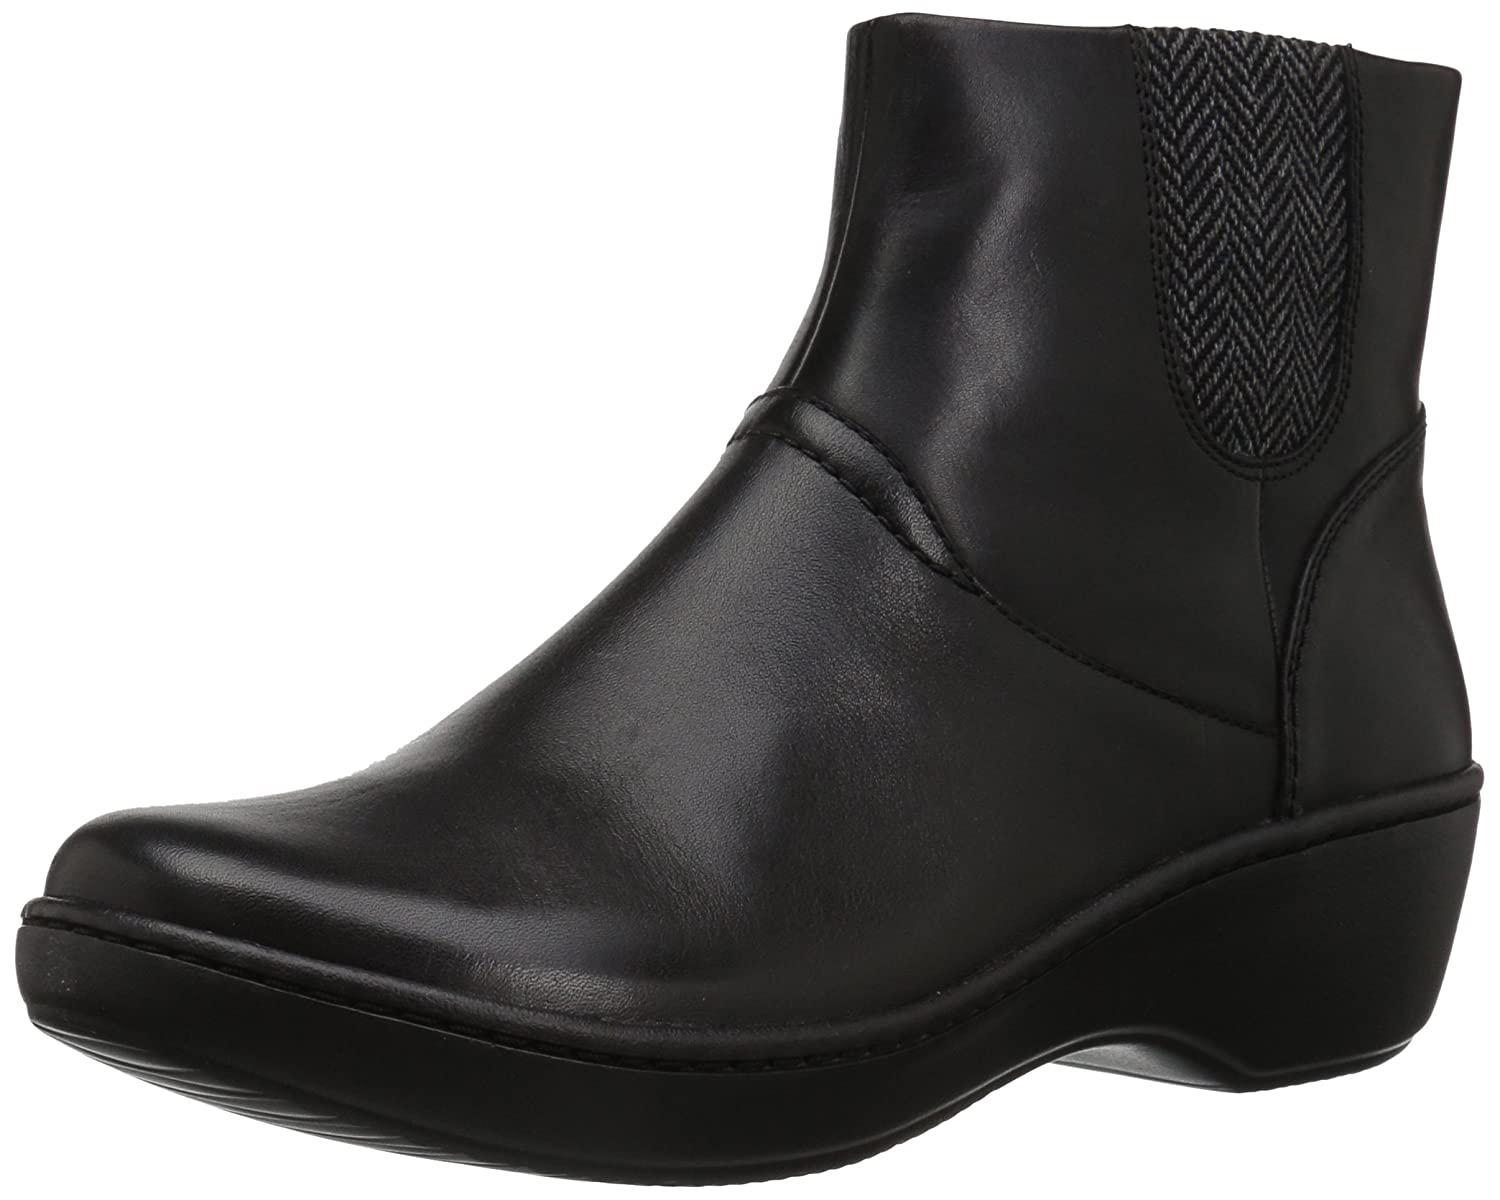 CLARKS Women's Delana Joleen Boot B01MR3198A 9 B(M) US|Black Leather